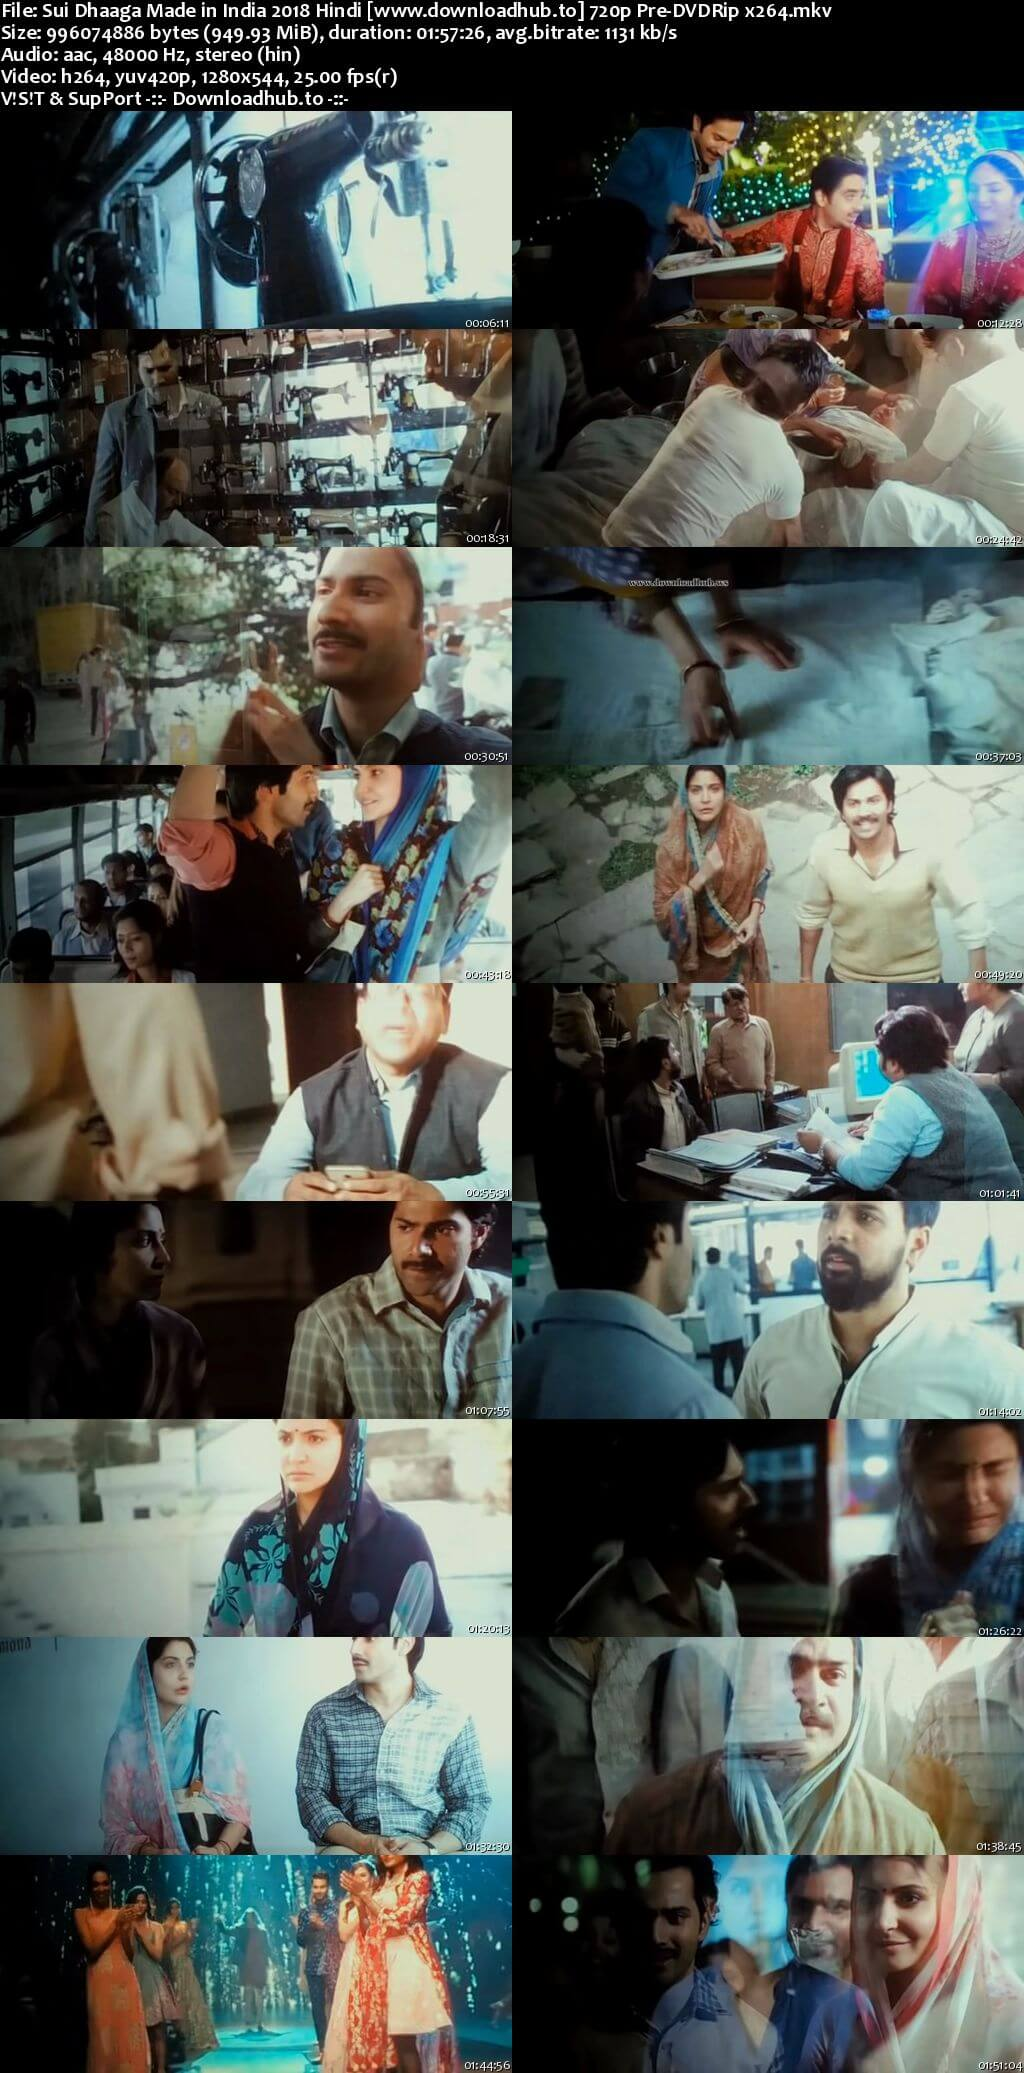 Sui Dhaaga Made in India 2018 Hindi 720p Pre-DVDRip x264